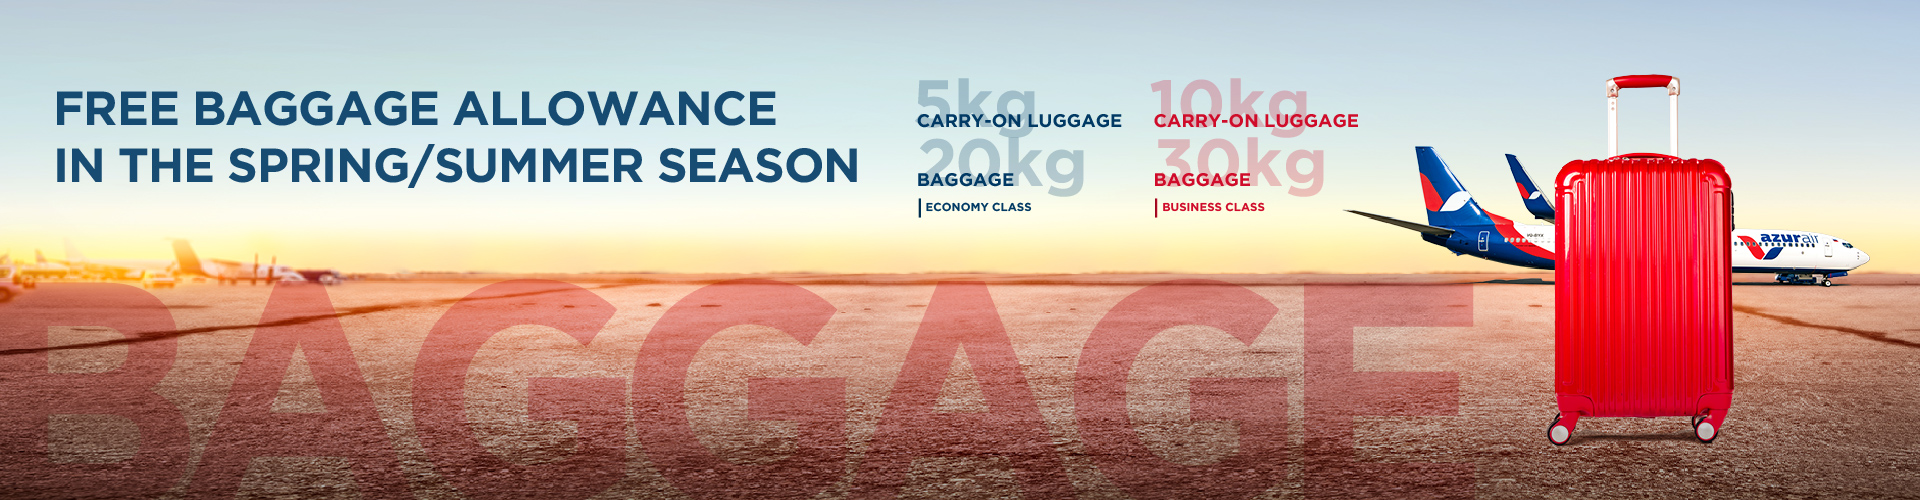 Azur air, Free baggage allowance in the spring/summer season